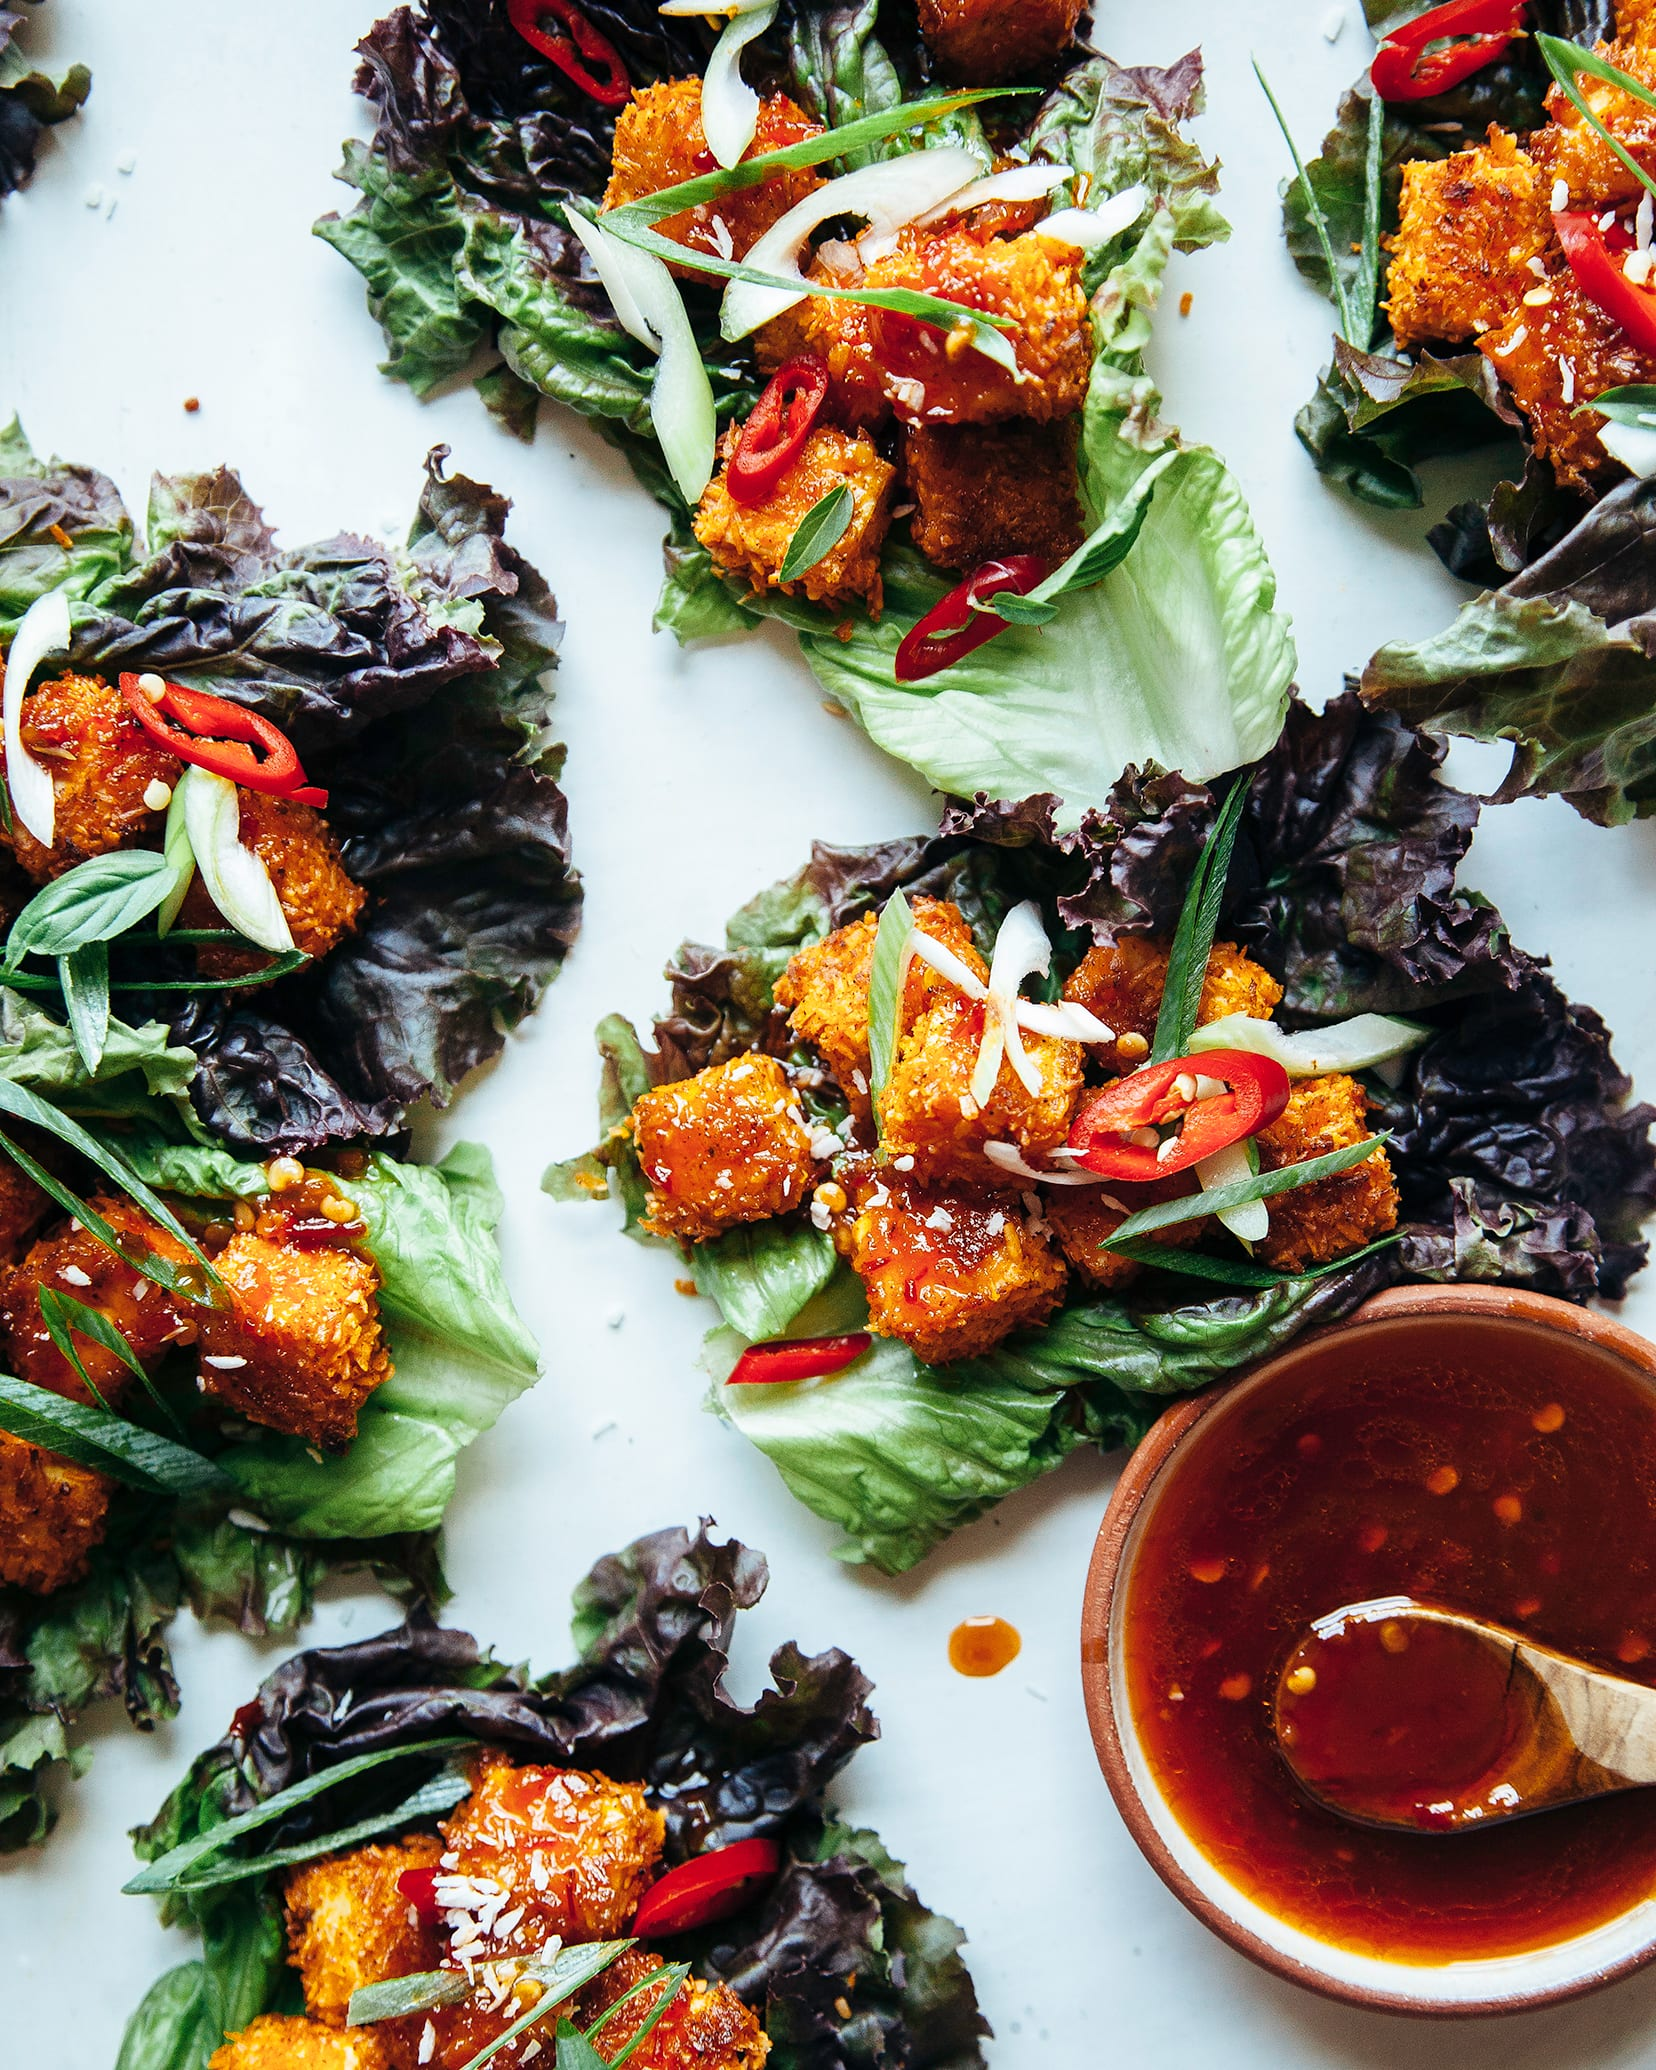 An overhead shot of crispy coconut tofu lettuce wraps with a bowl of sweet chili sauce for drizzling nearby. The tofu is wrapped in red leaf lettuce and the cubes of tofu are deep golden brown.